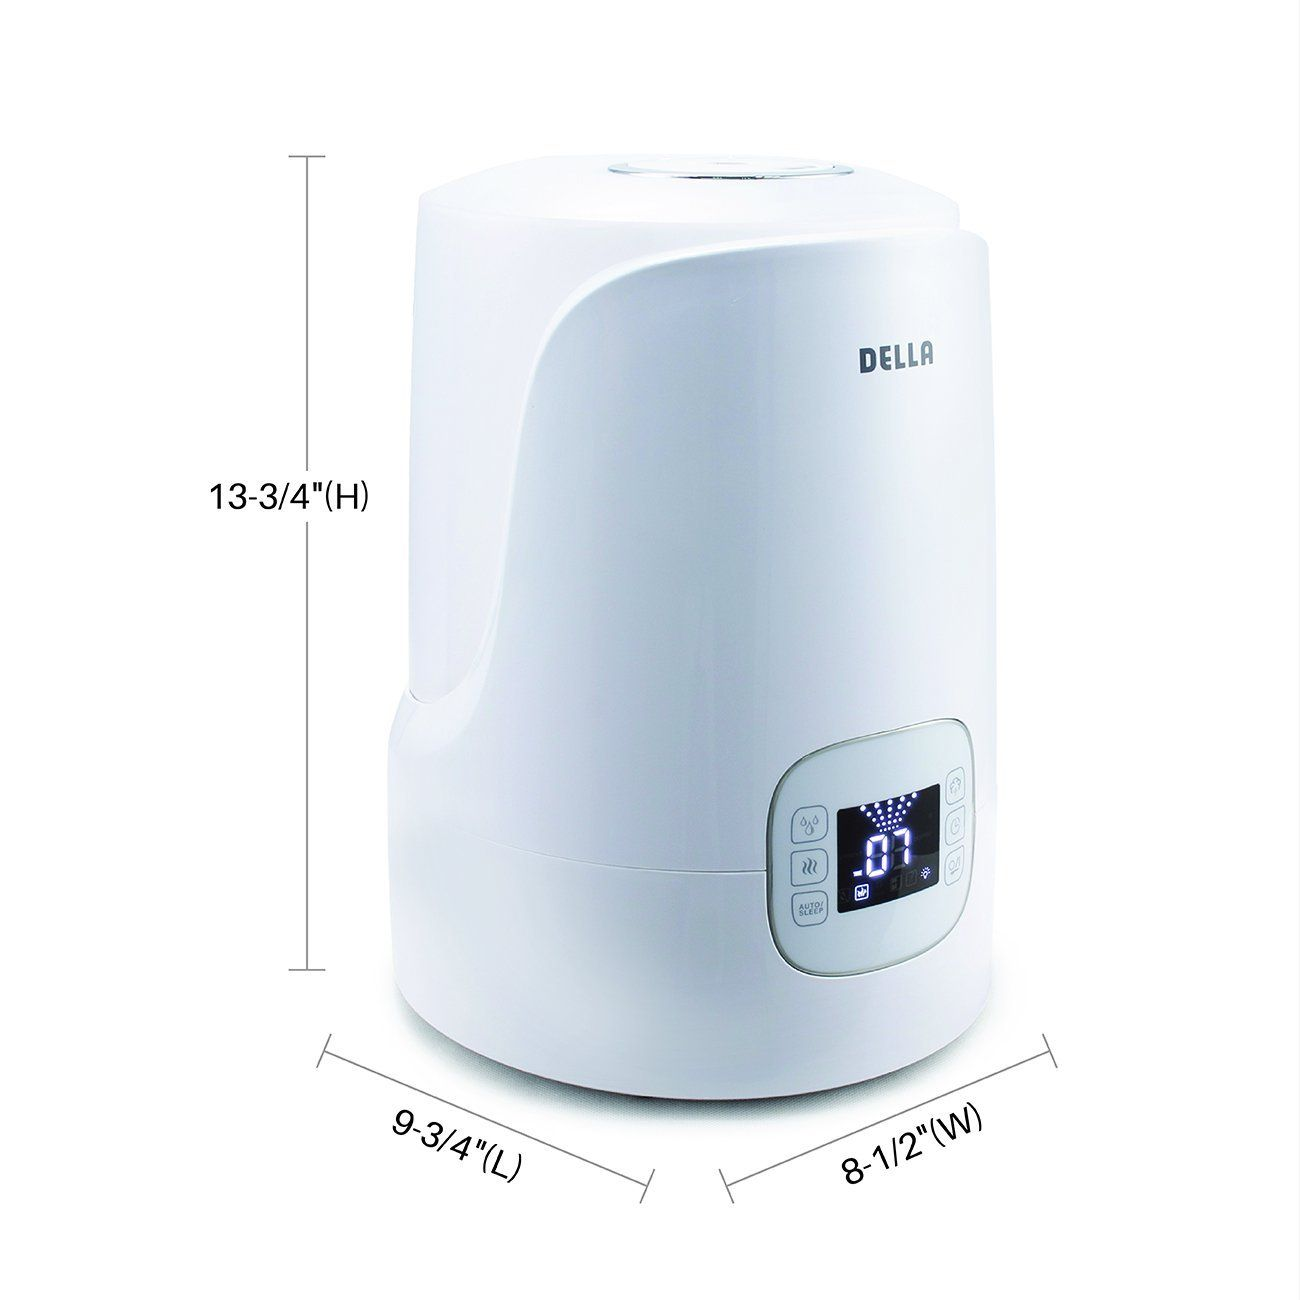 Warm Mist Humidifier Buying Guide | IndoorBreathing